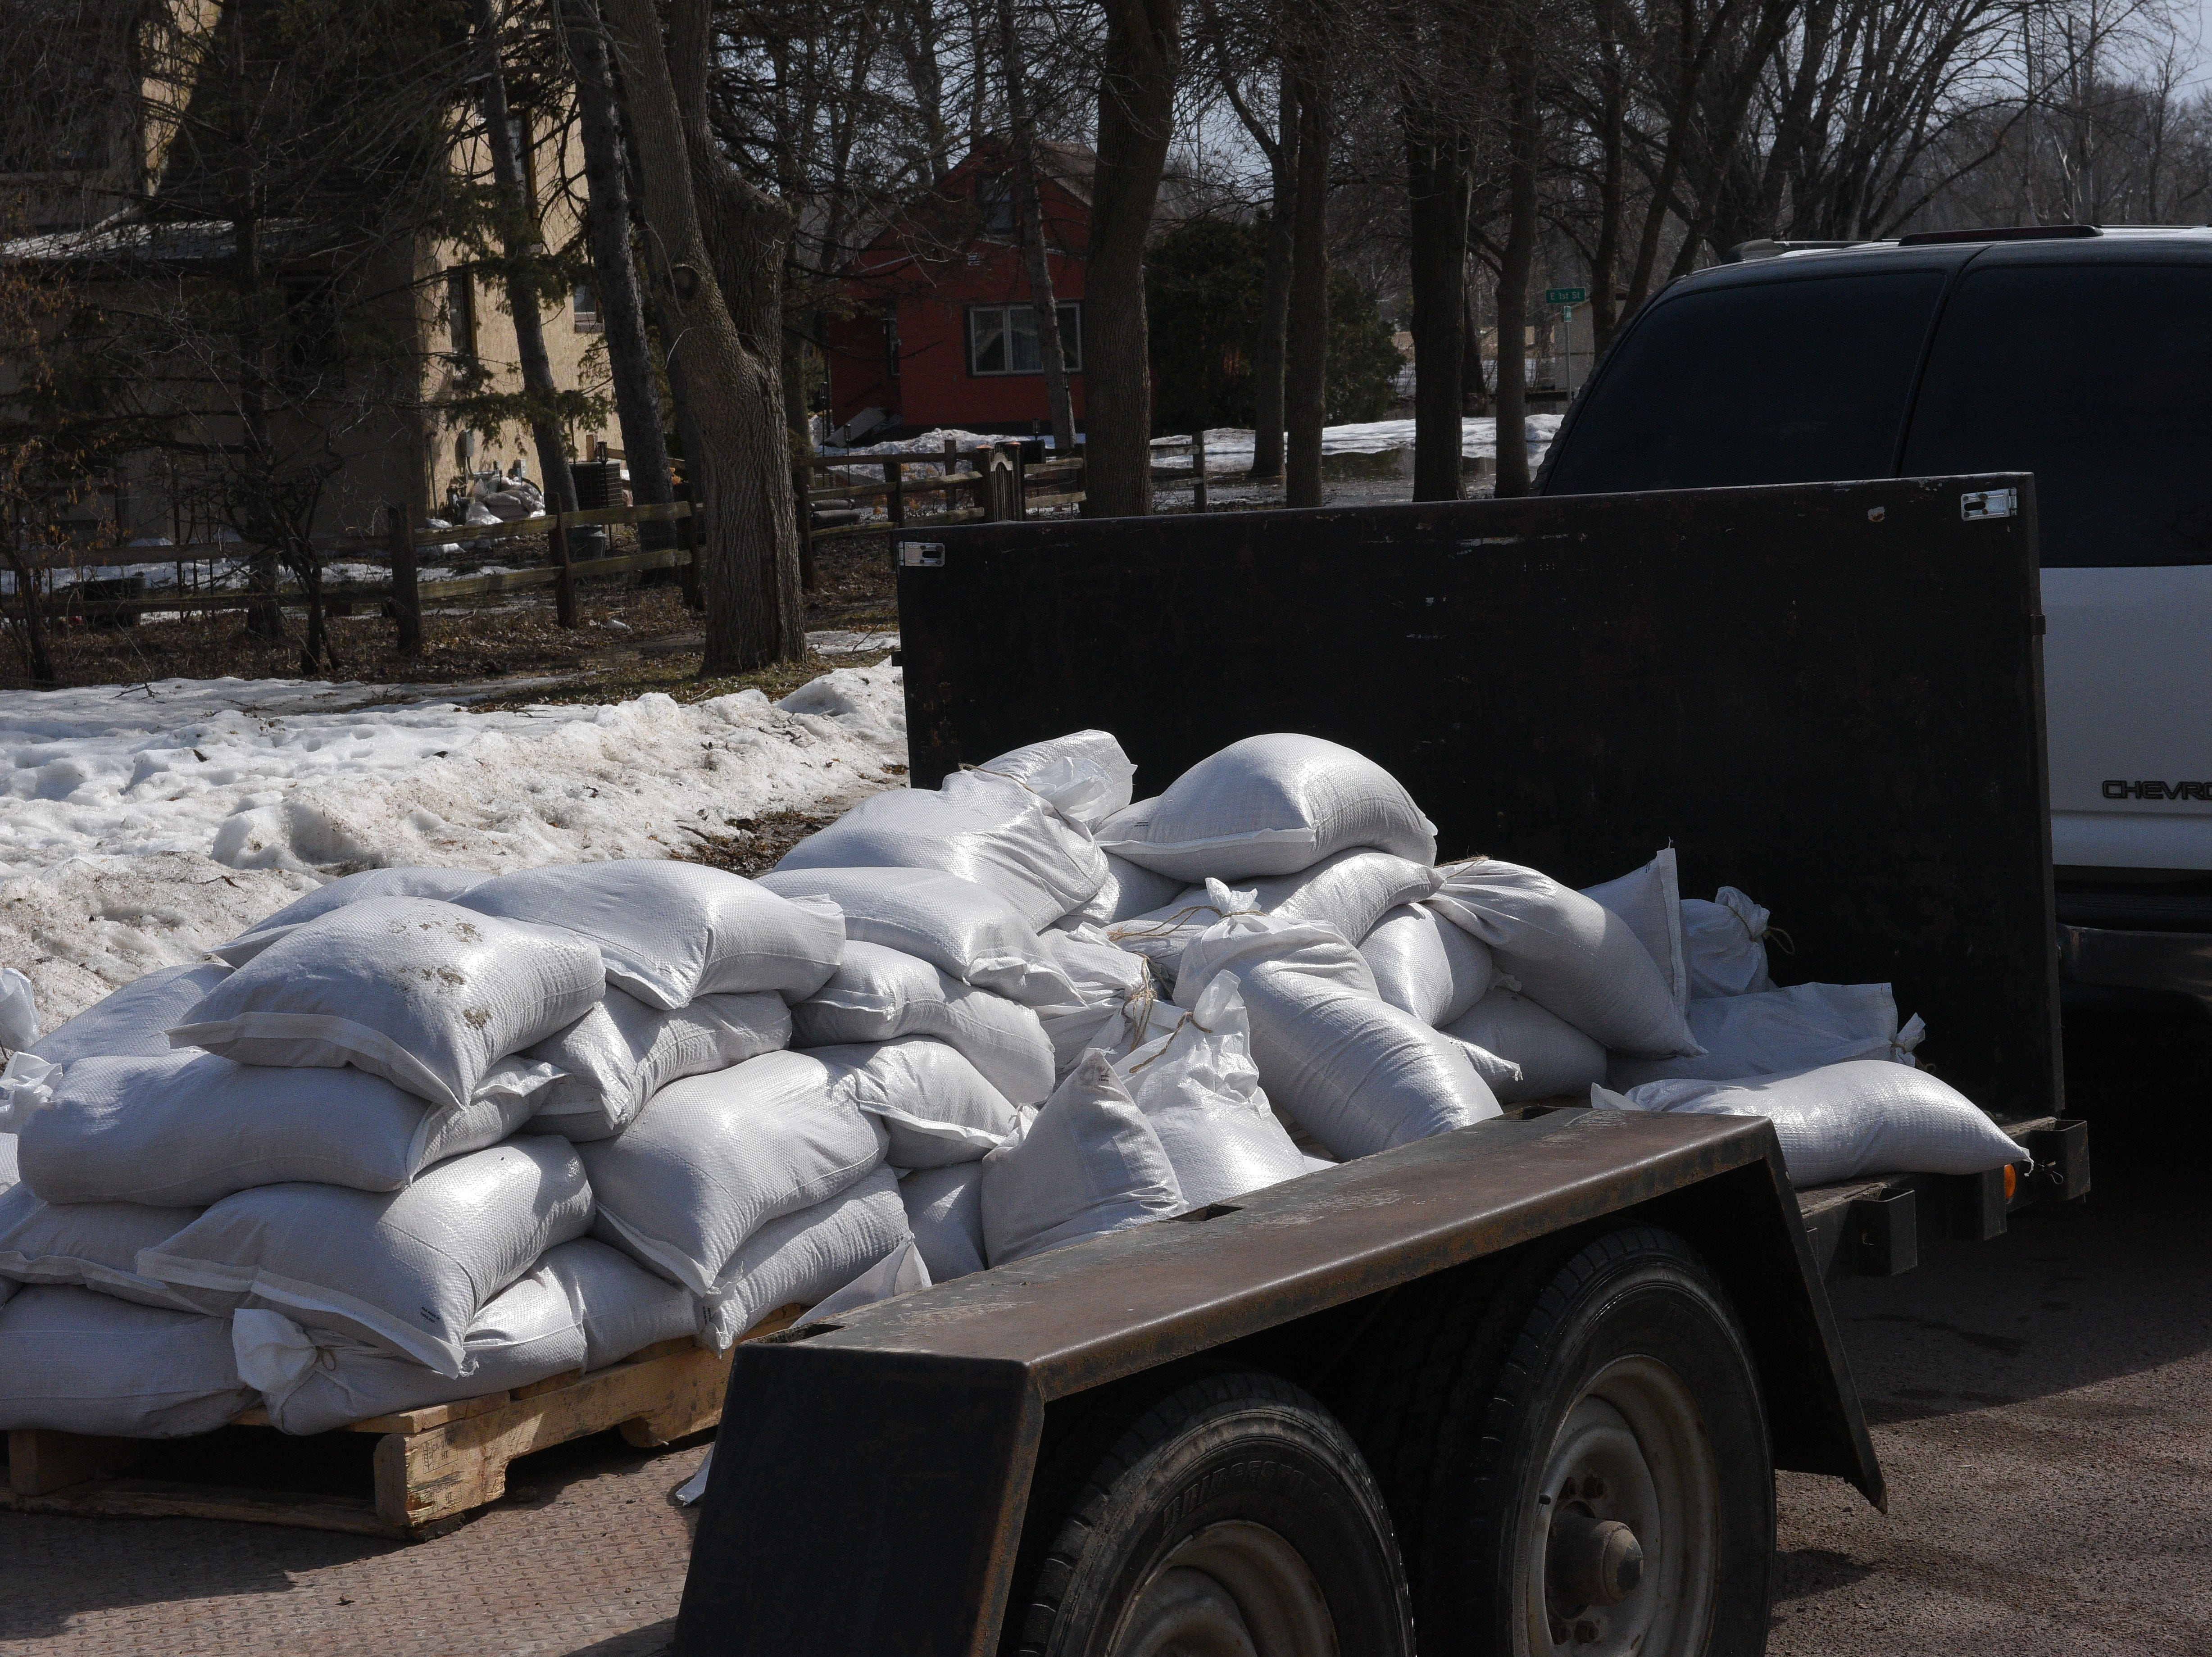 Sandbags are delivered to a house in Dell Rapids on March 23, 2019. Significant flooding is expected around the city following near-record river flows.